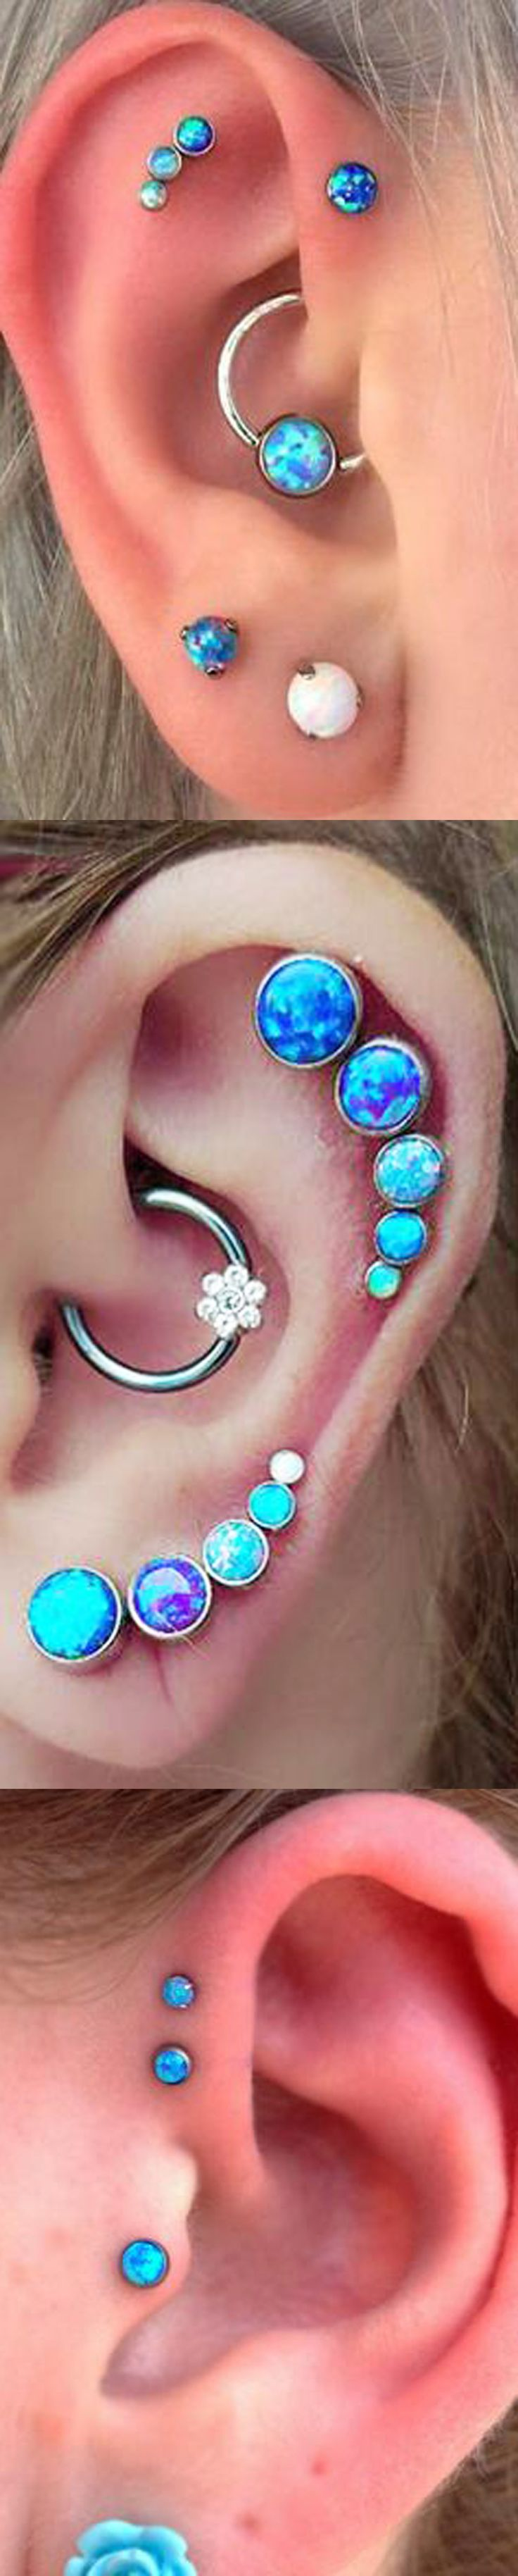 Multiple Ear Piercing Ideas Combinations at MyBodiArt.com - Cartilage Earring, Rook Ring, Tragus Stud, Forward Helix Piercings